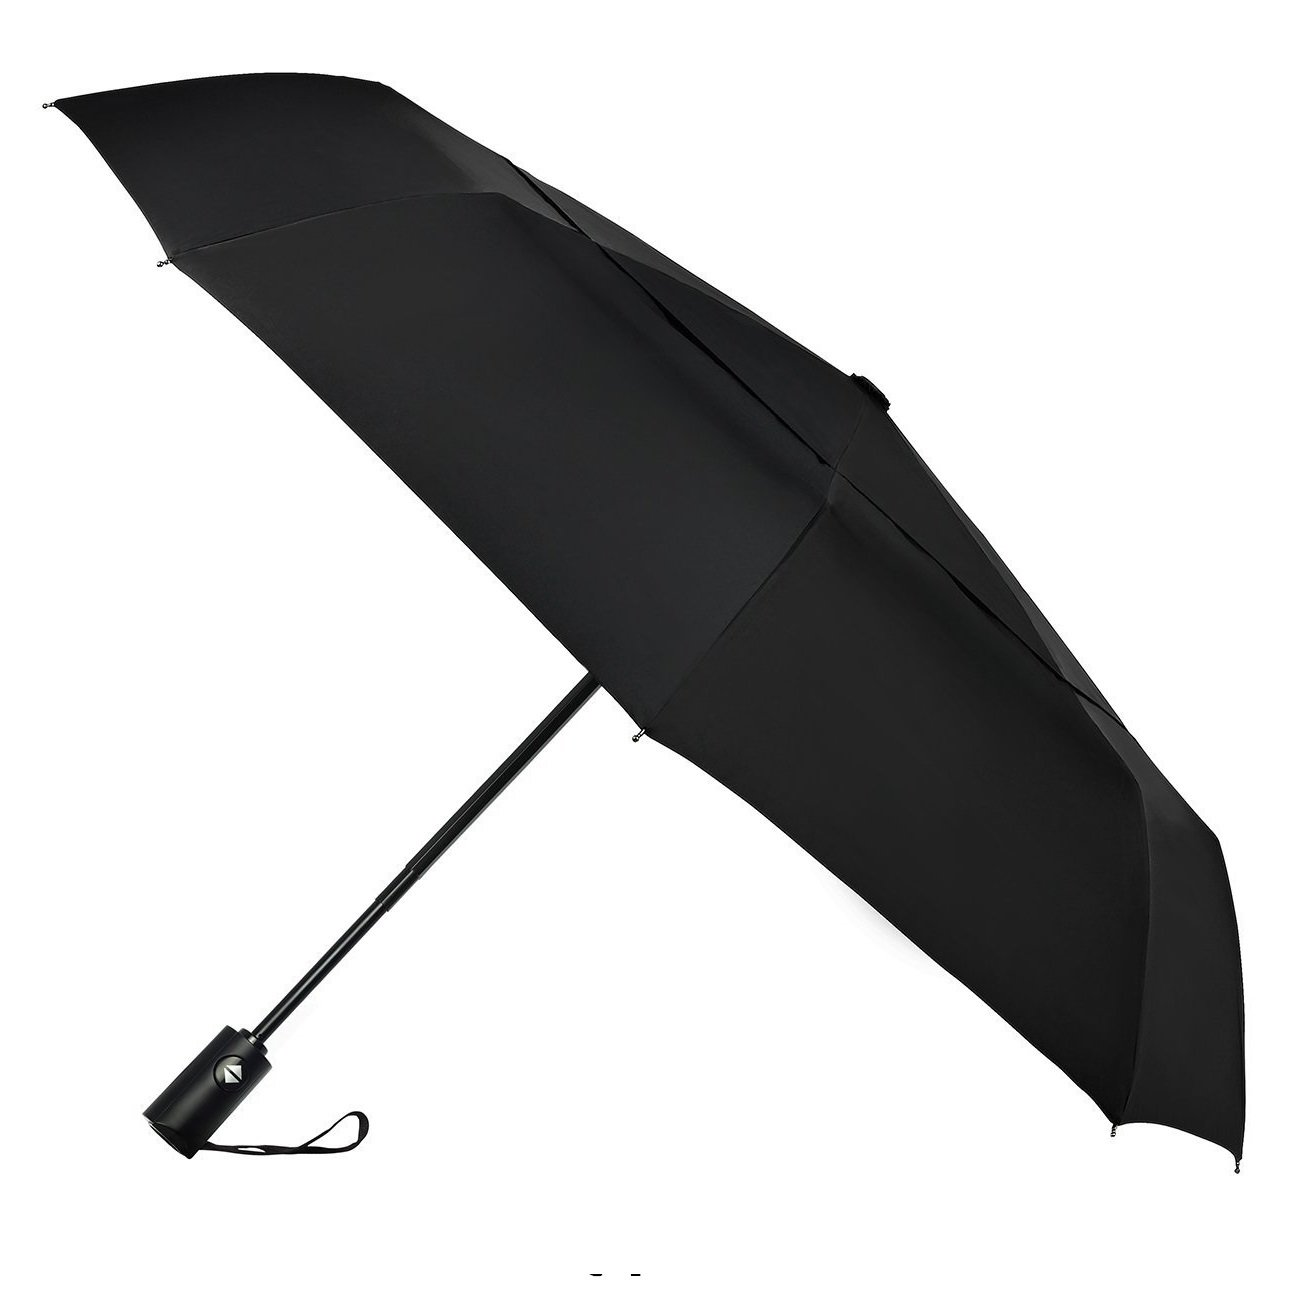 Windproof Travel Umbrella, Double Canopy Construction, Automatic Open Close for One Handed Operation, Compact Lightweight Umbrella for Rain Snow (23, Black) penkou